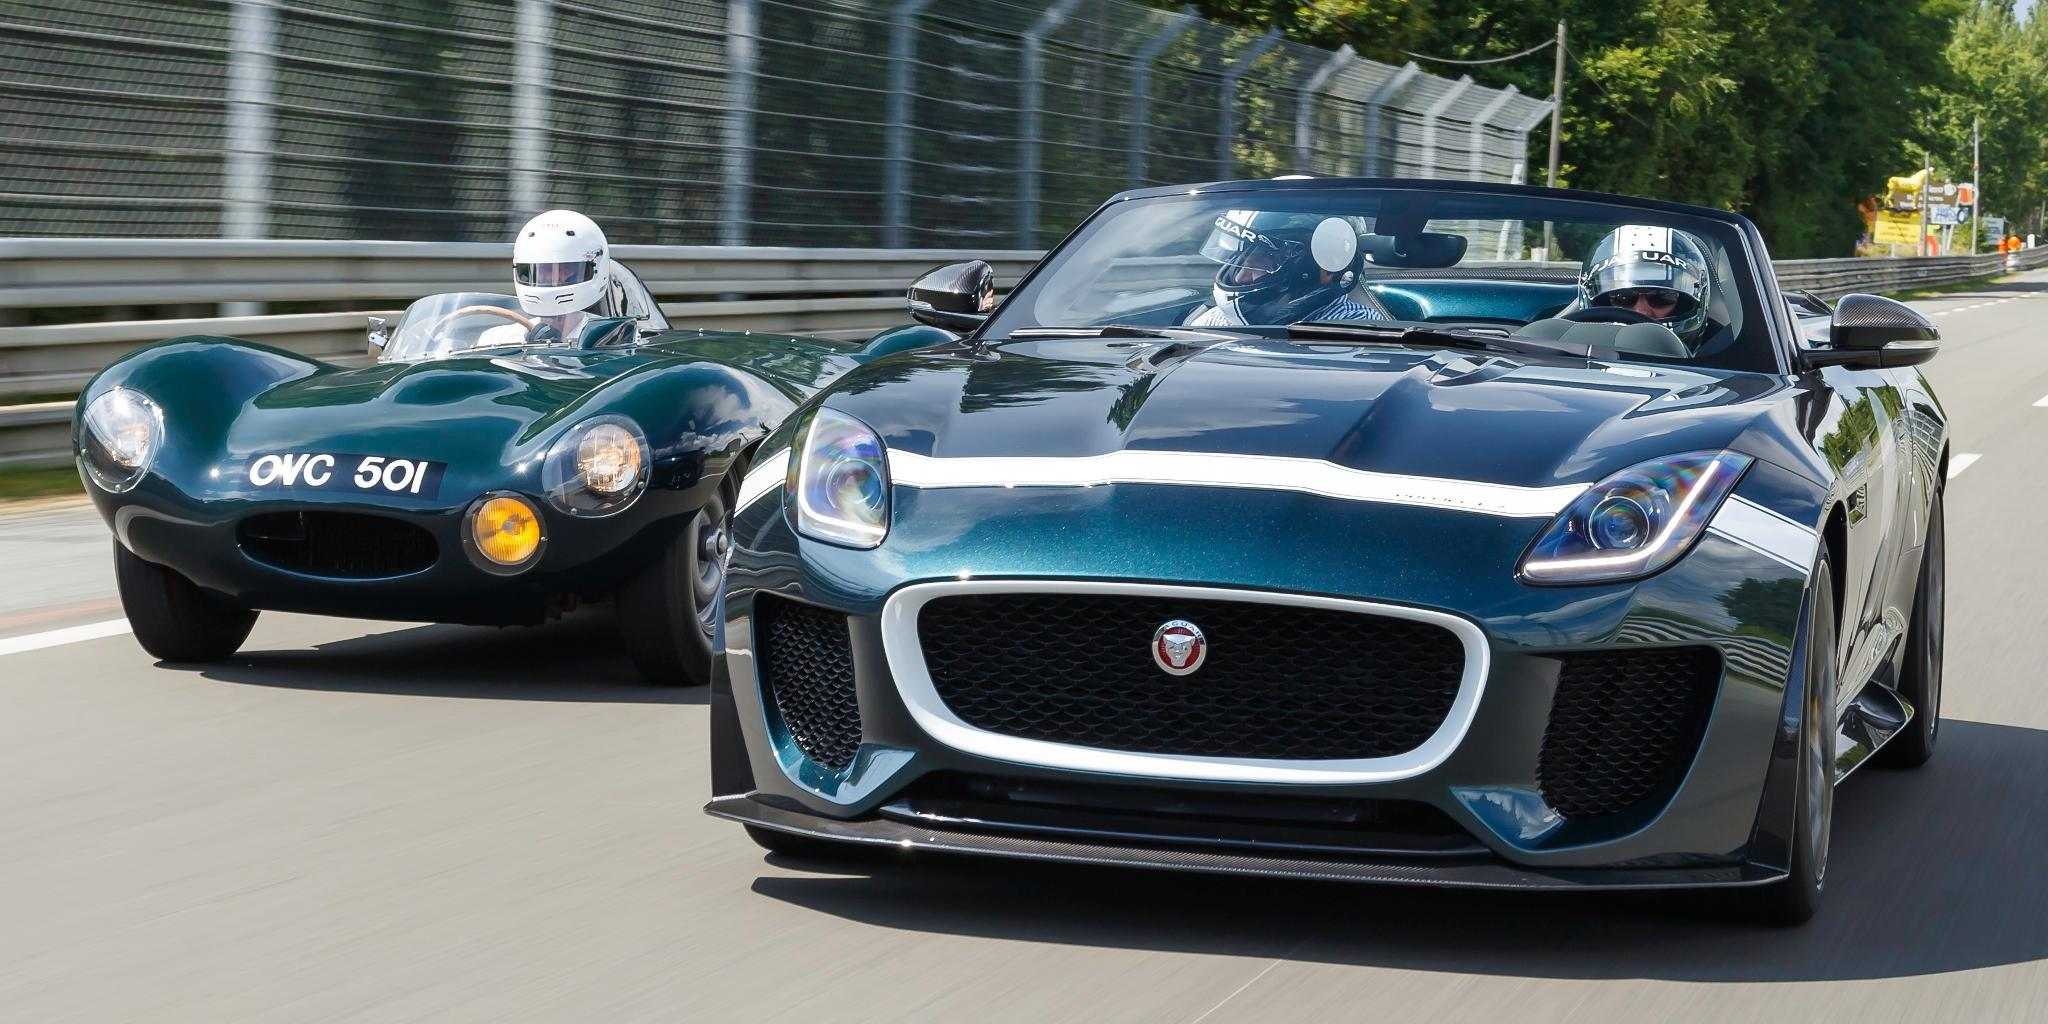 We'll wear green. But, we make our own luck. #GoodToBeBad #StPatricksDay #FTYPE #Project7 #DType http://t.co/8gHMwDwHgd